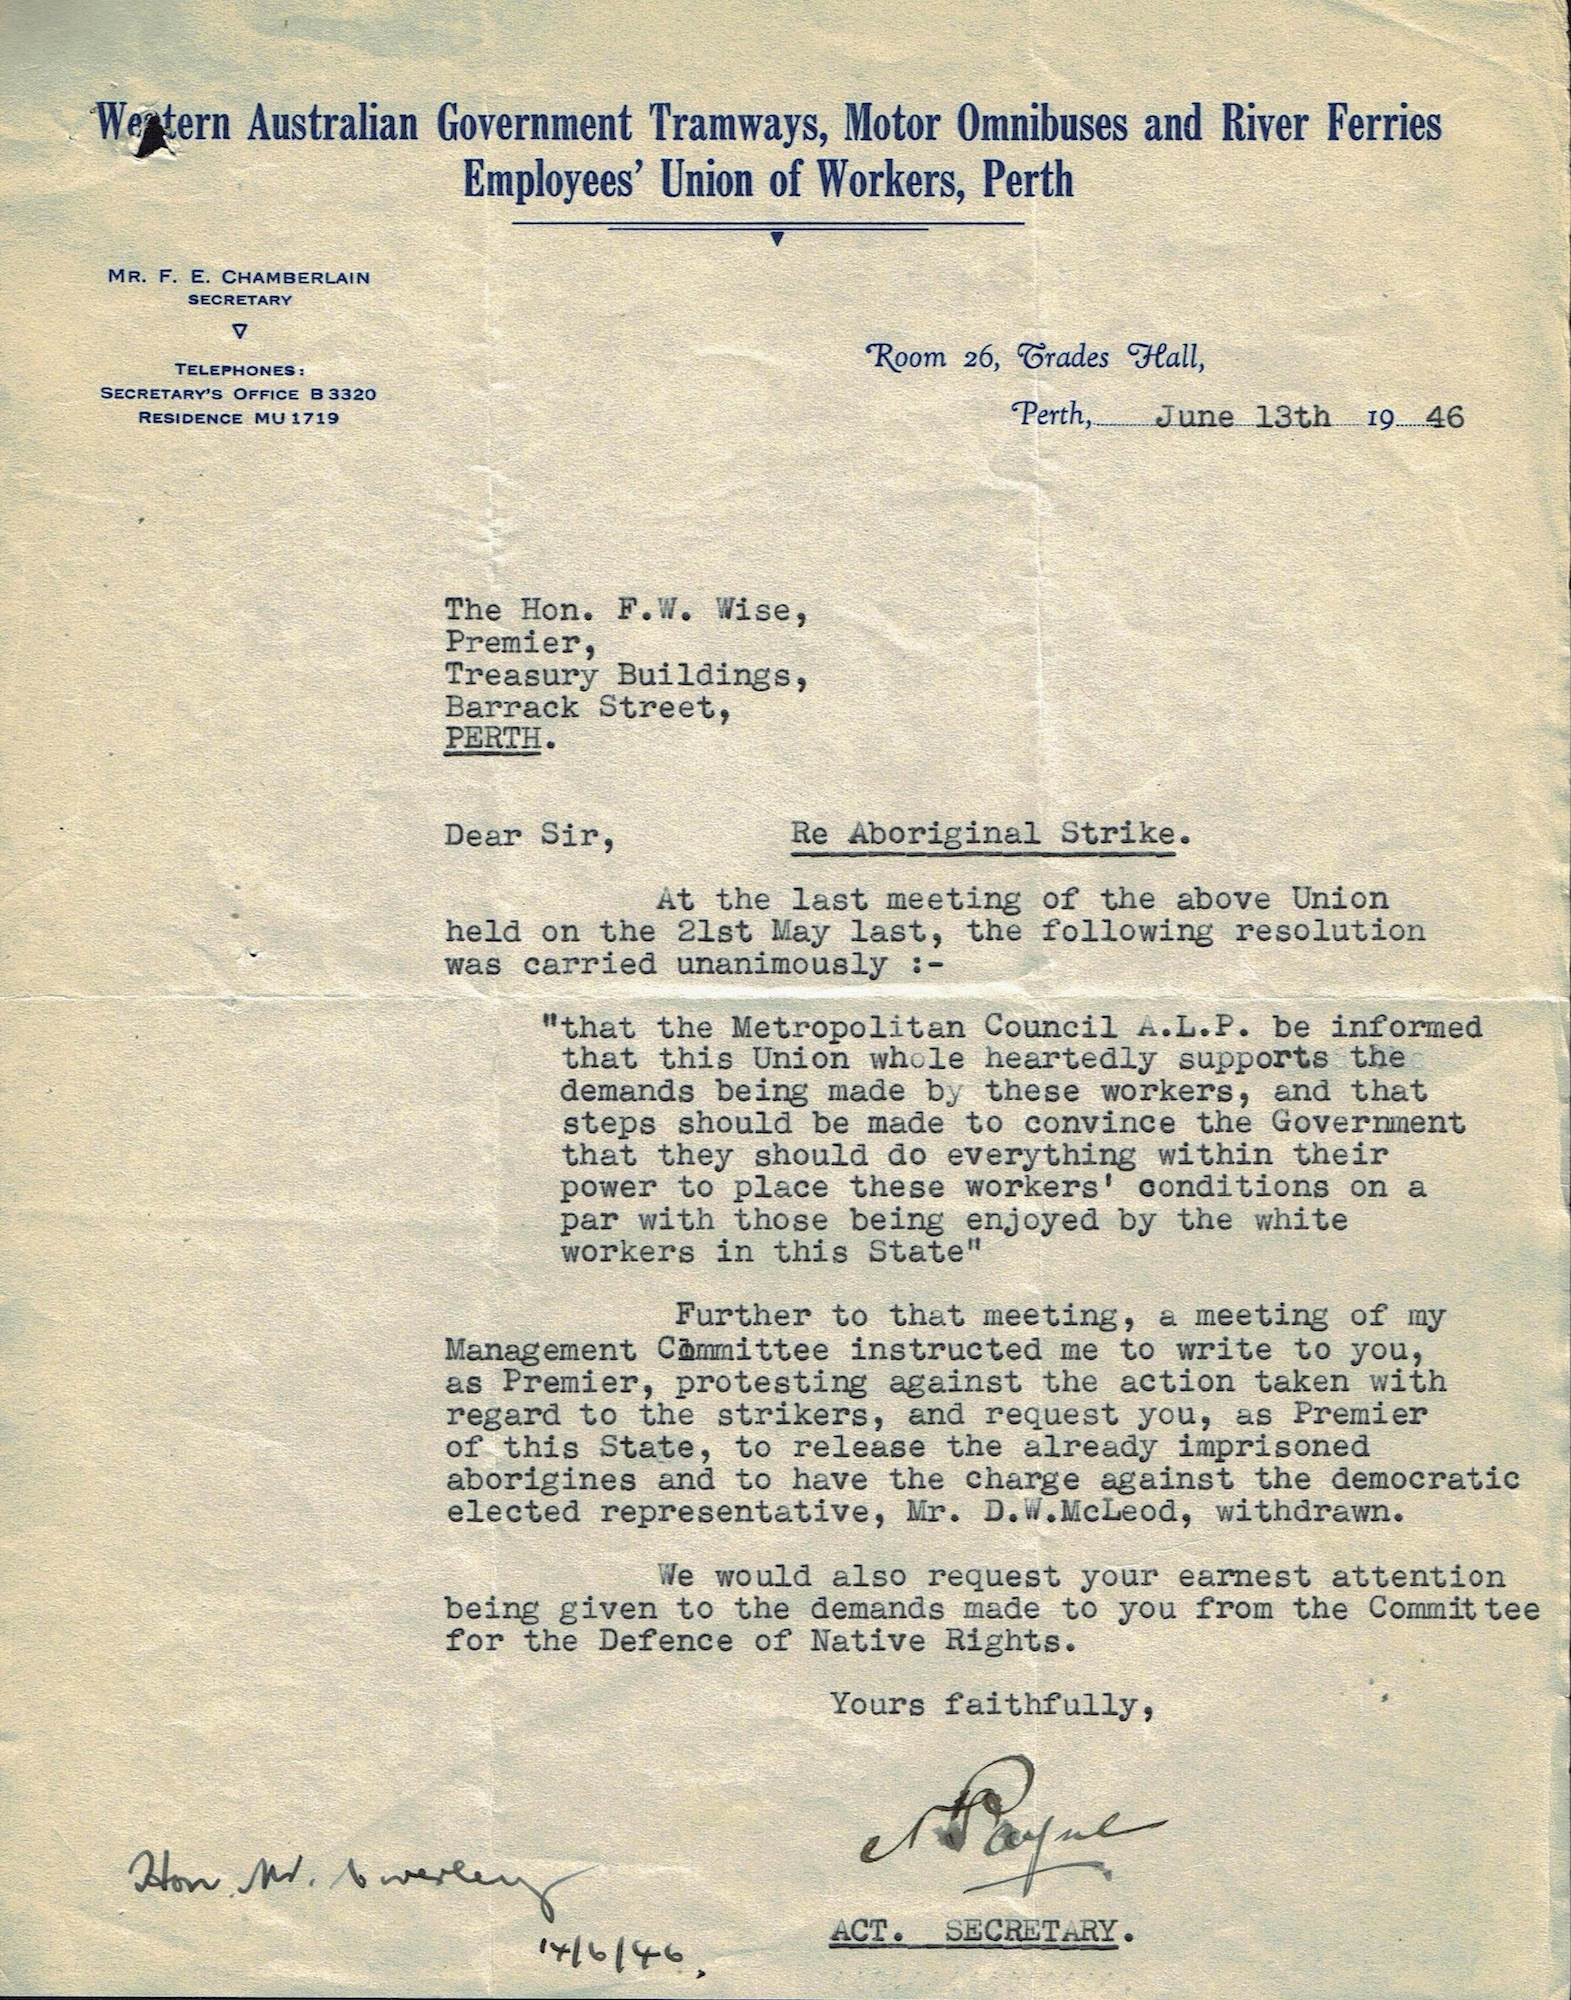 N. Payne to Premier Wise, 13 June 1946